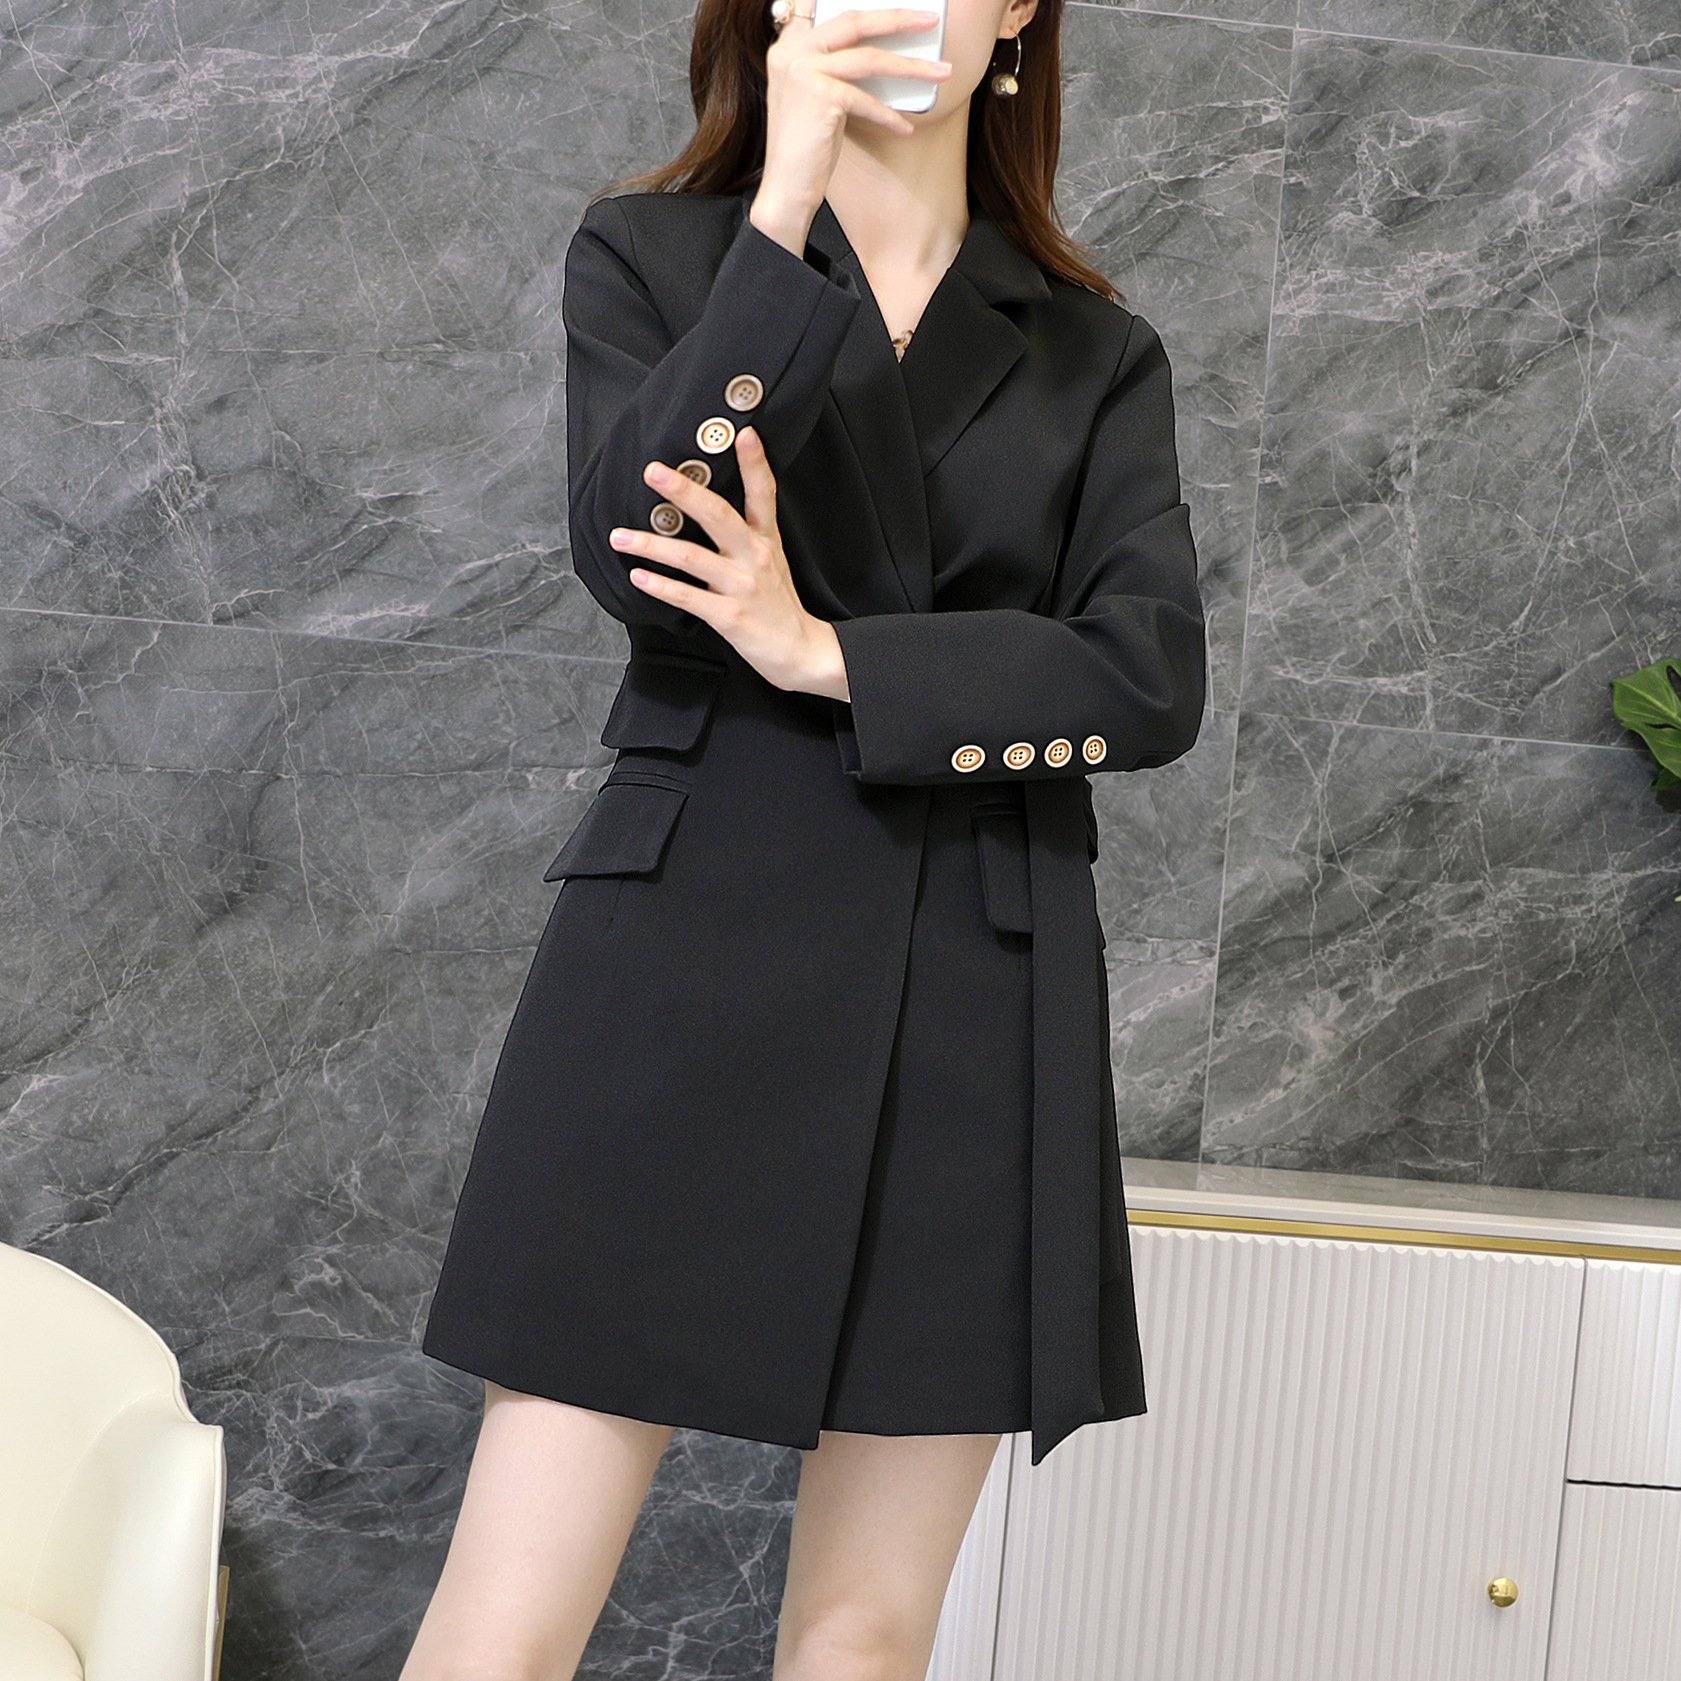 M-5XL High Quality Female Blazer 2020 new autumn and winter solid color mid-length ladies jacket Ladies loose fashion small suit